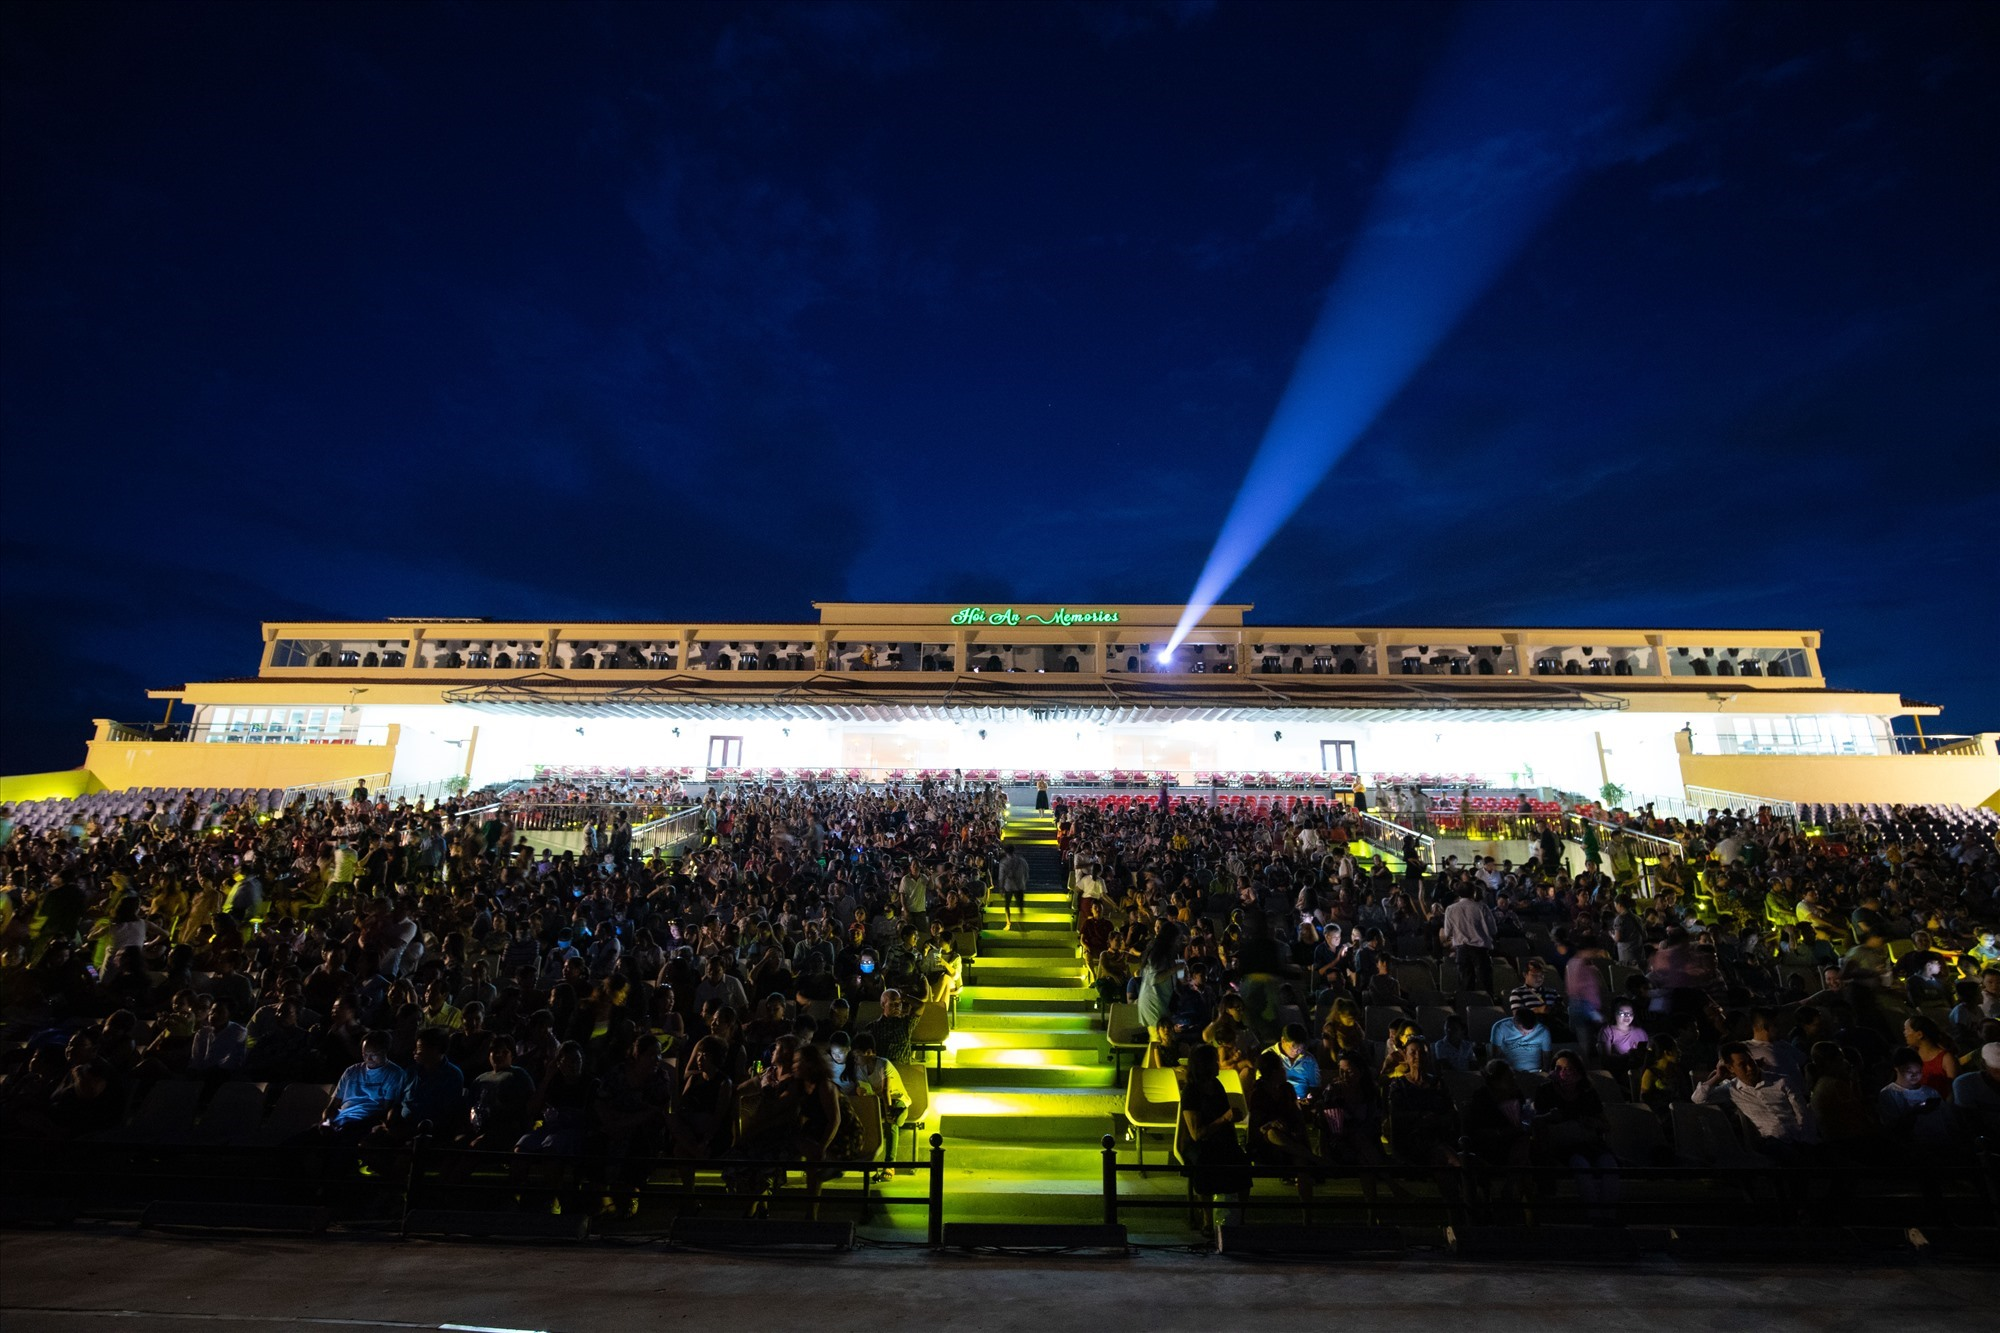 Full grandstand of the Hoi An Memories show